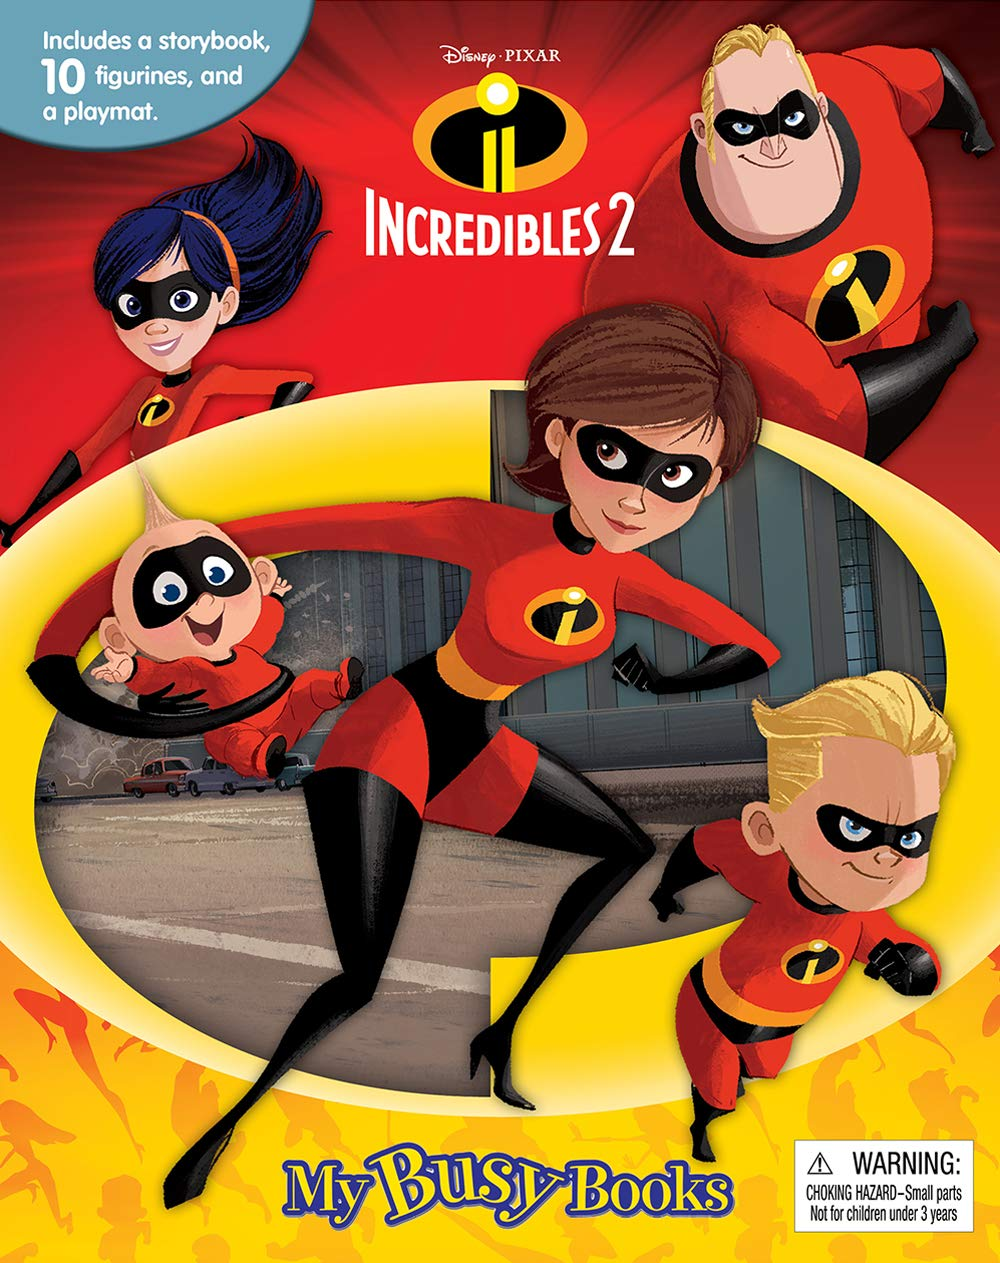 Disney The Incredibles 2 My Busy Book - Saveinstant